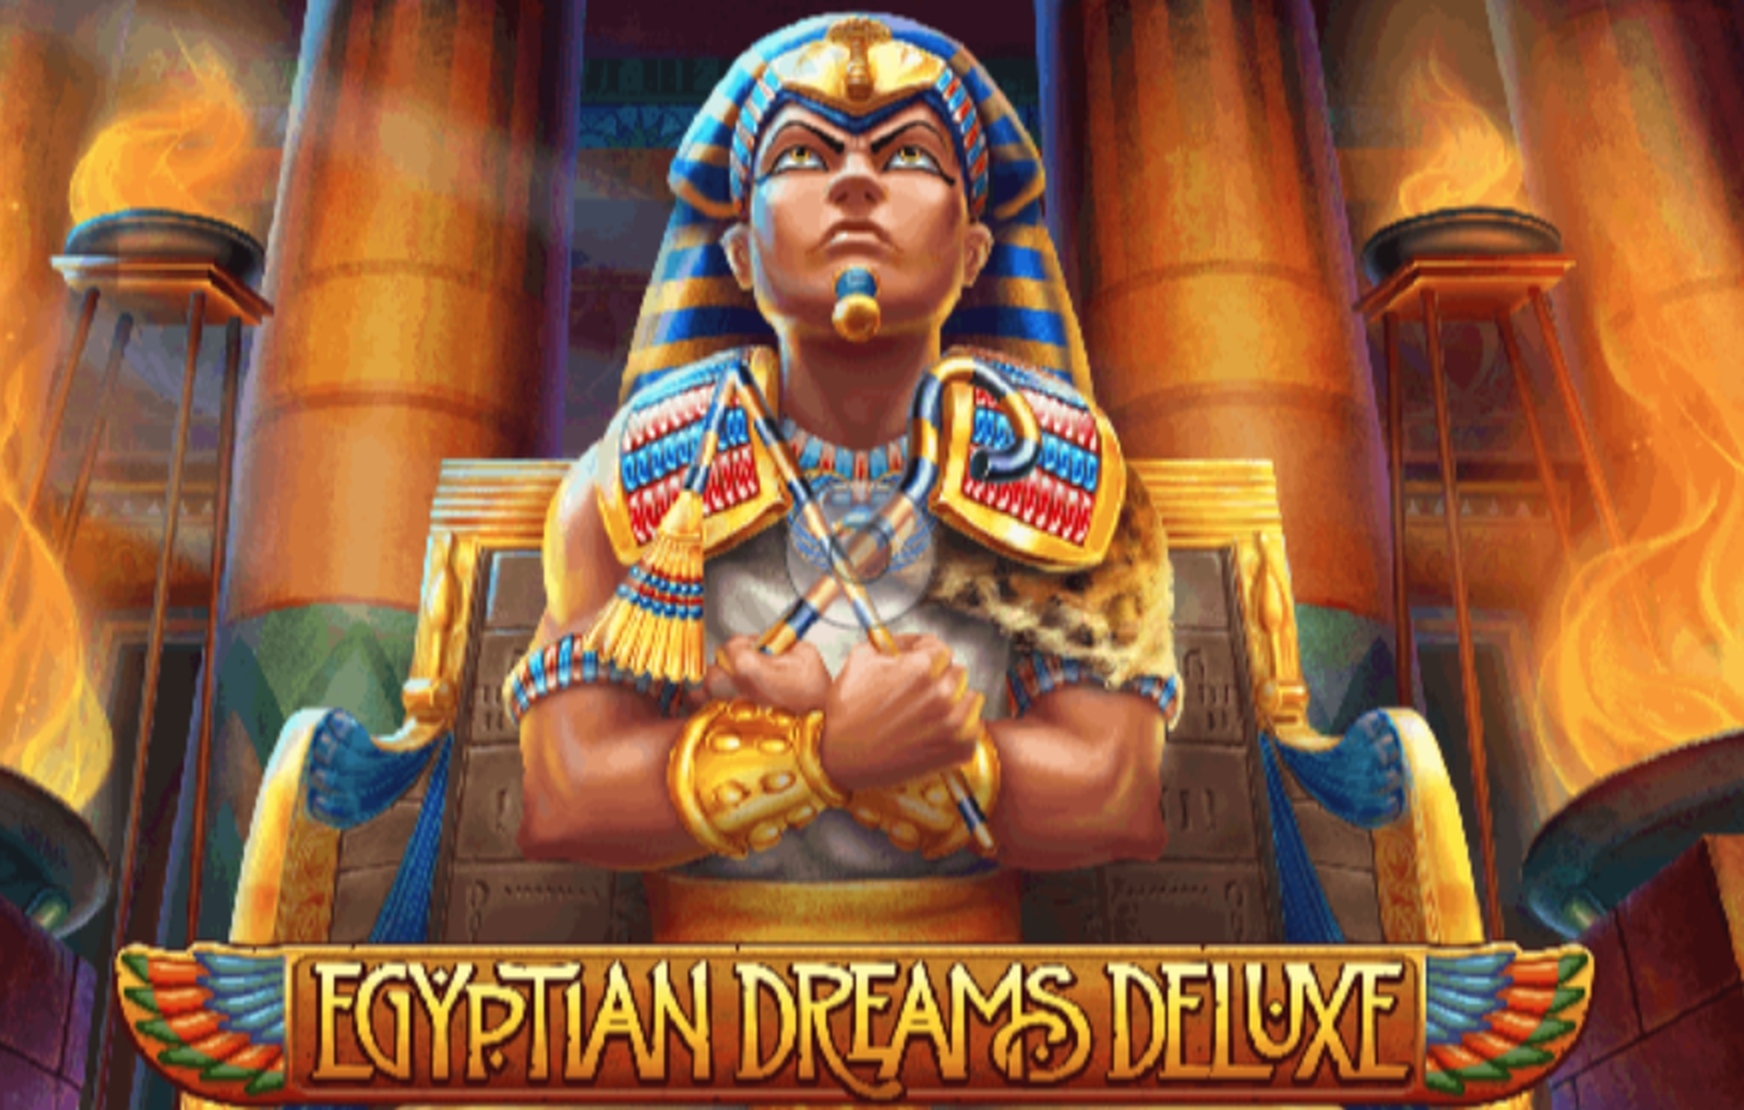 The Egyptian Dreams Online Slot Demo Game by Habanero